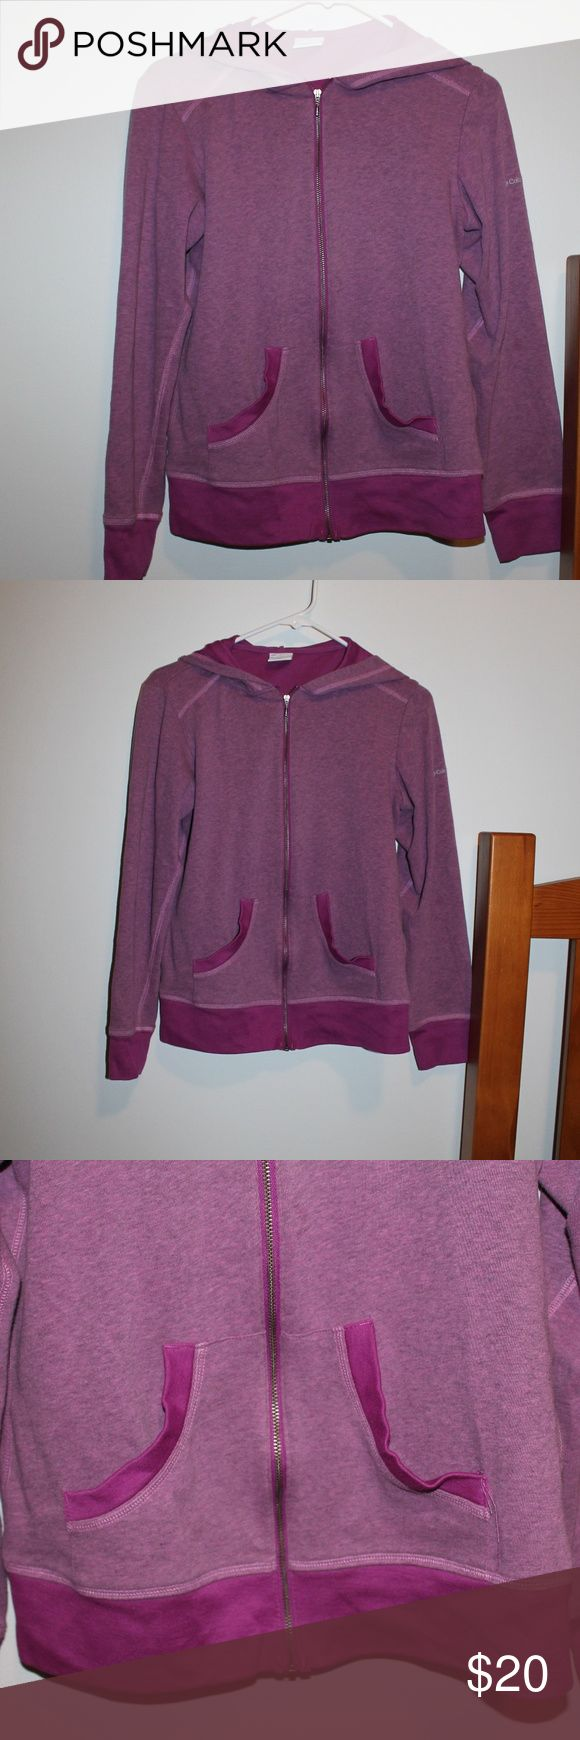 Columbia Purple Zip Up Hoodie Size Medium -Perfect condition -Purple -Perfect for spring and fall weather -Very comfortable -Two front pockets -Zip up front Columbia Sweaters